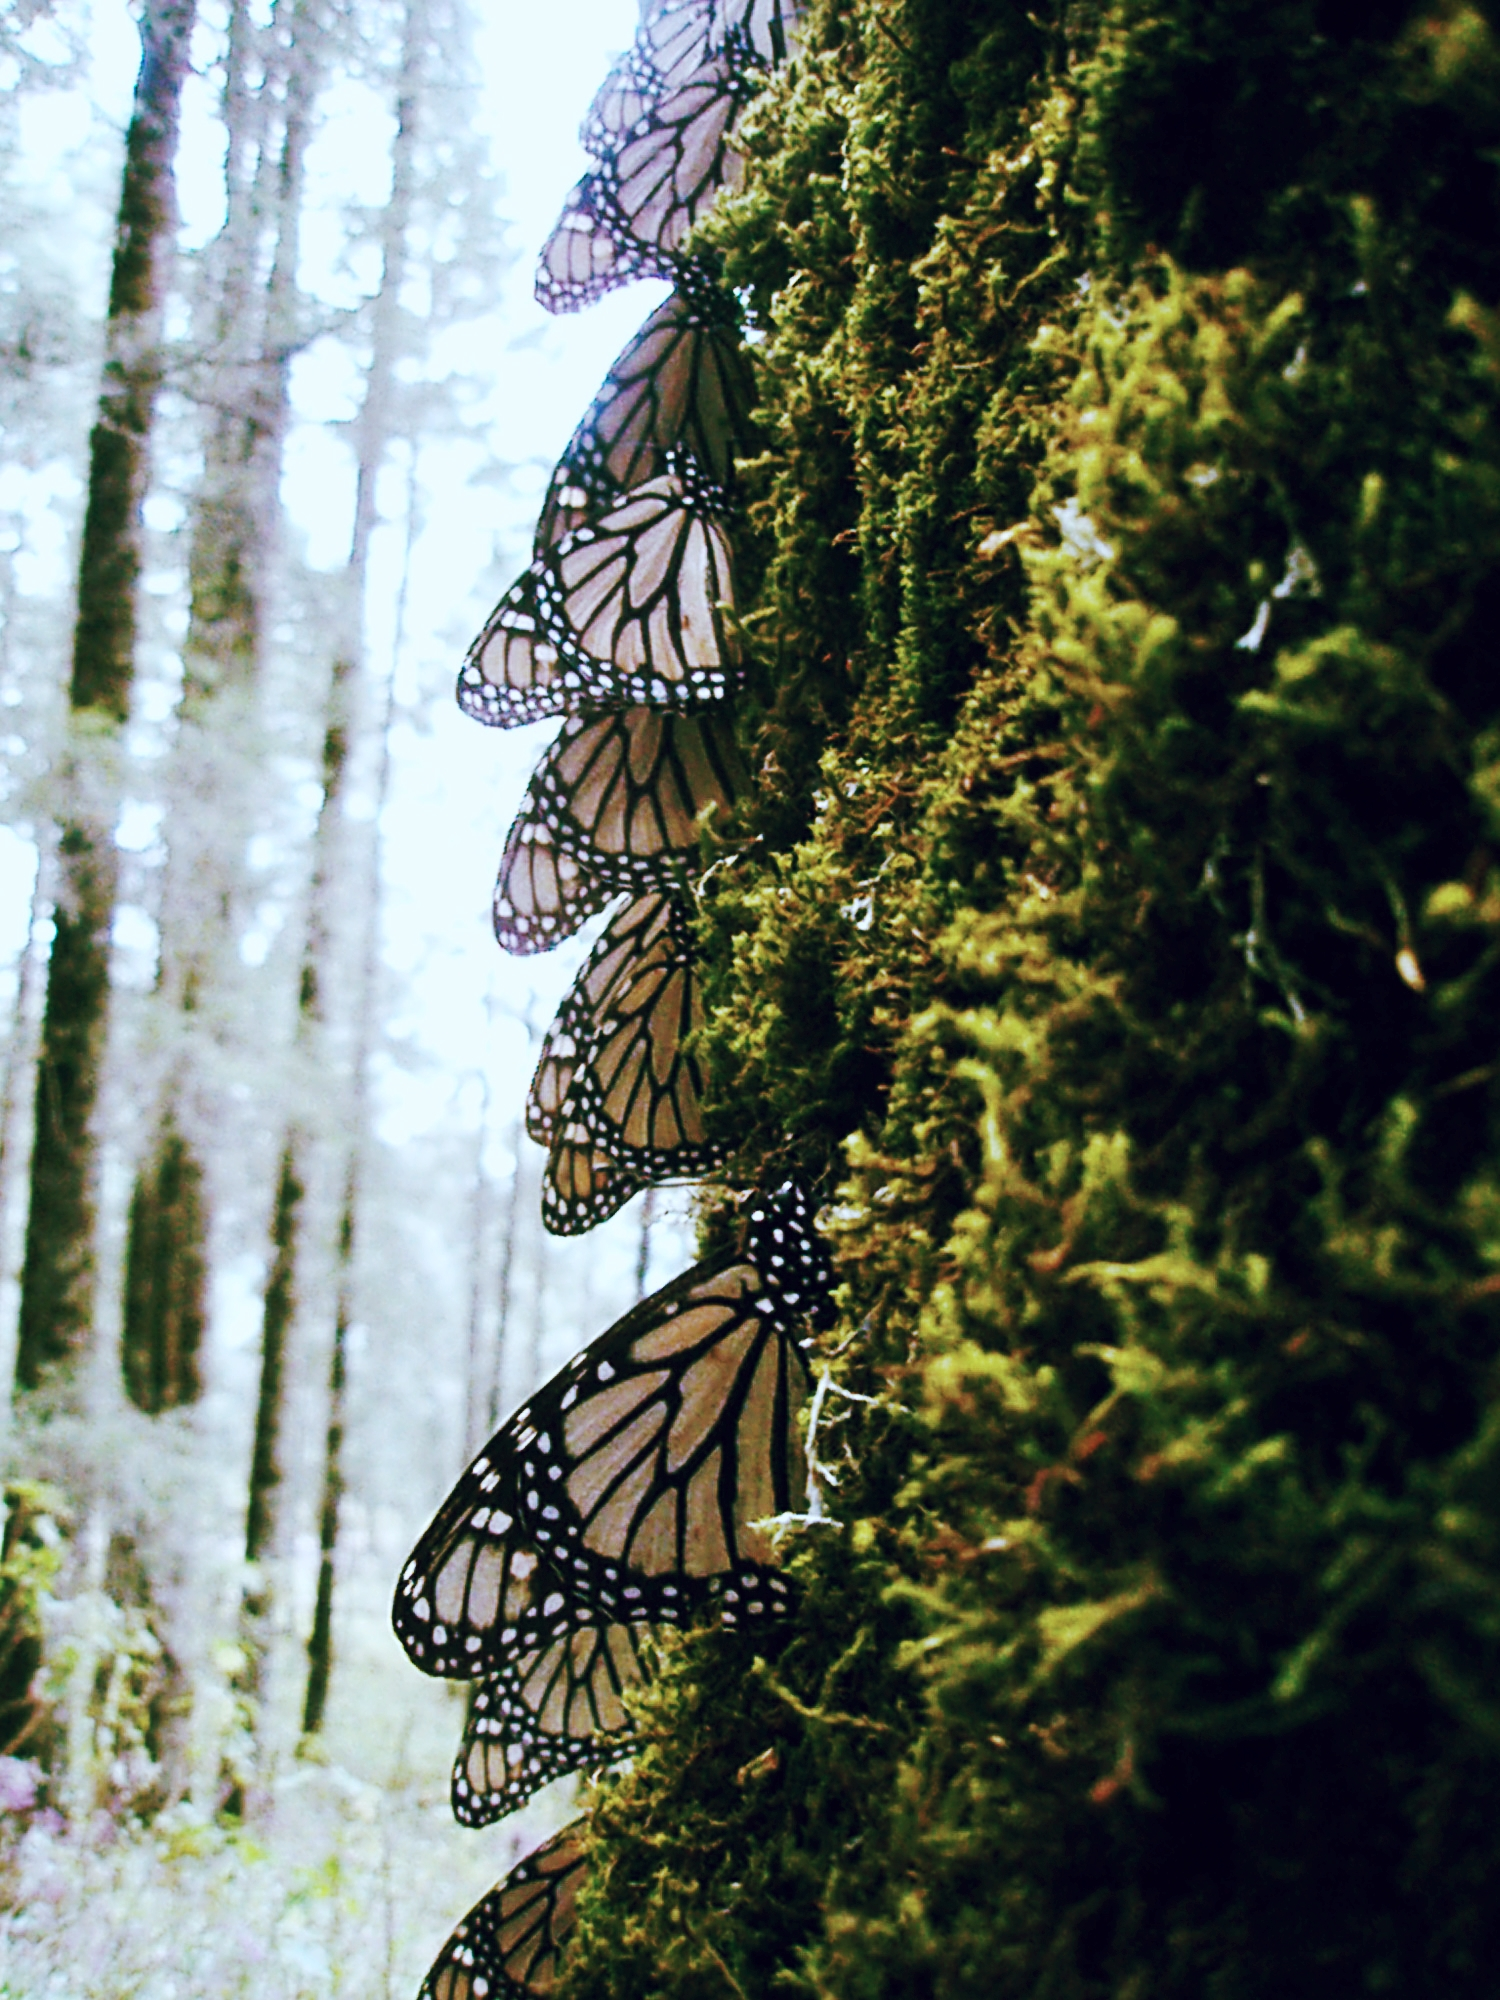 Monarch butterflies overwintering in Mexico